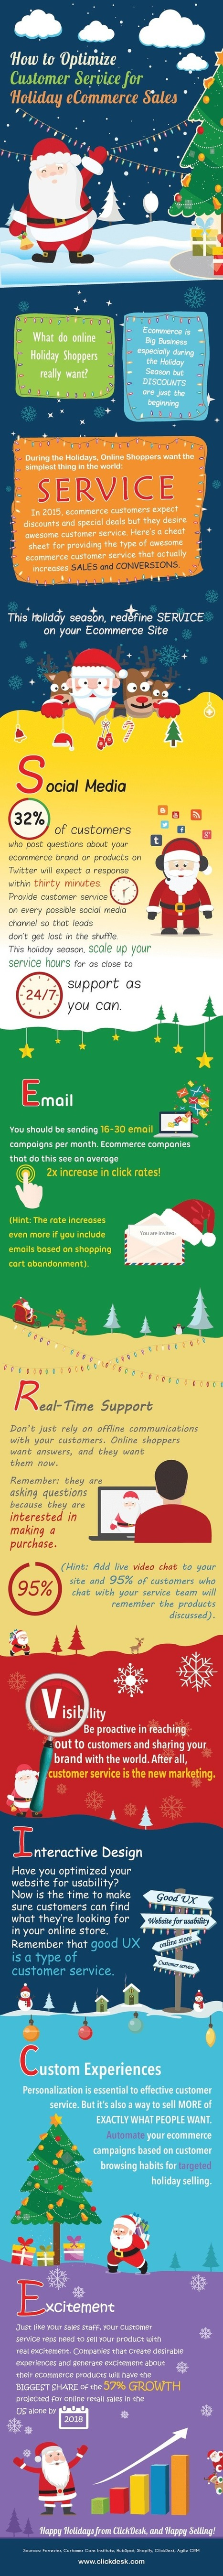 eCommerce Businesses: Improving Sales in Holiday Season | All Infographics | Scoop.it